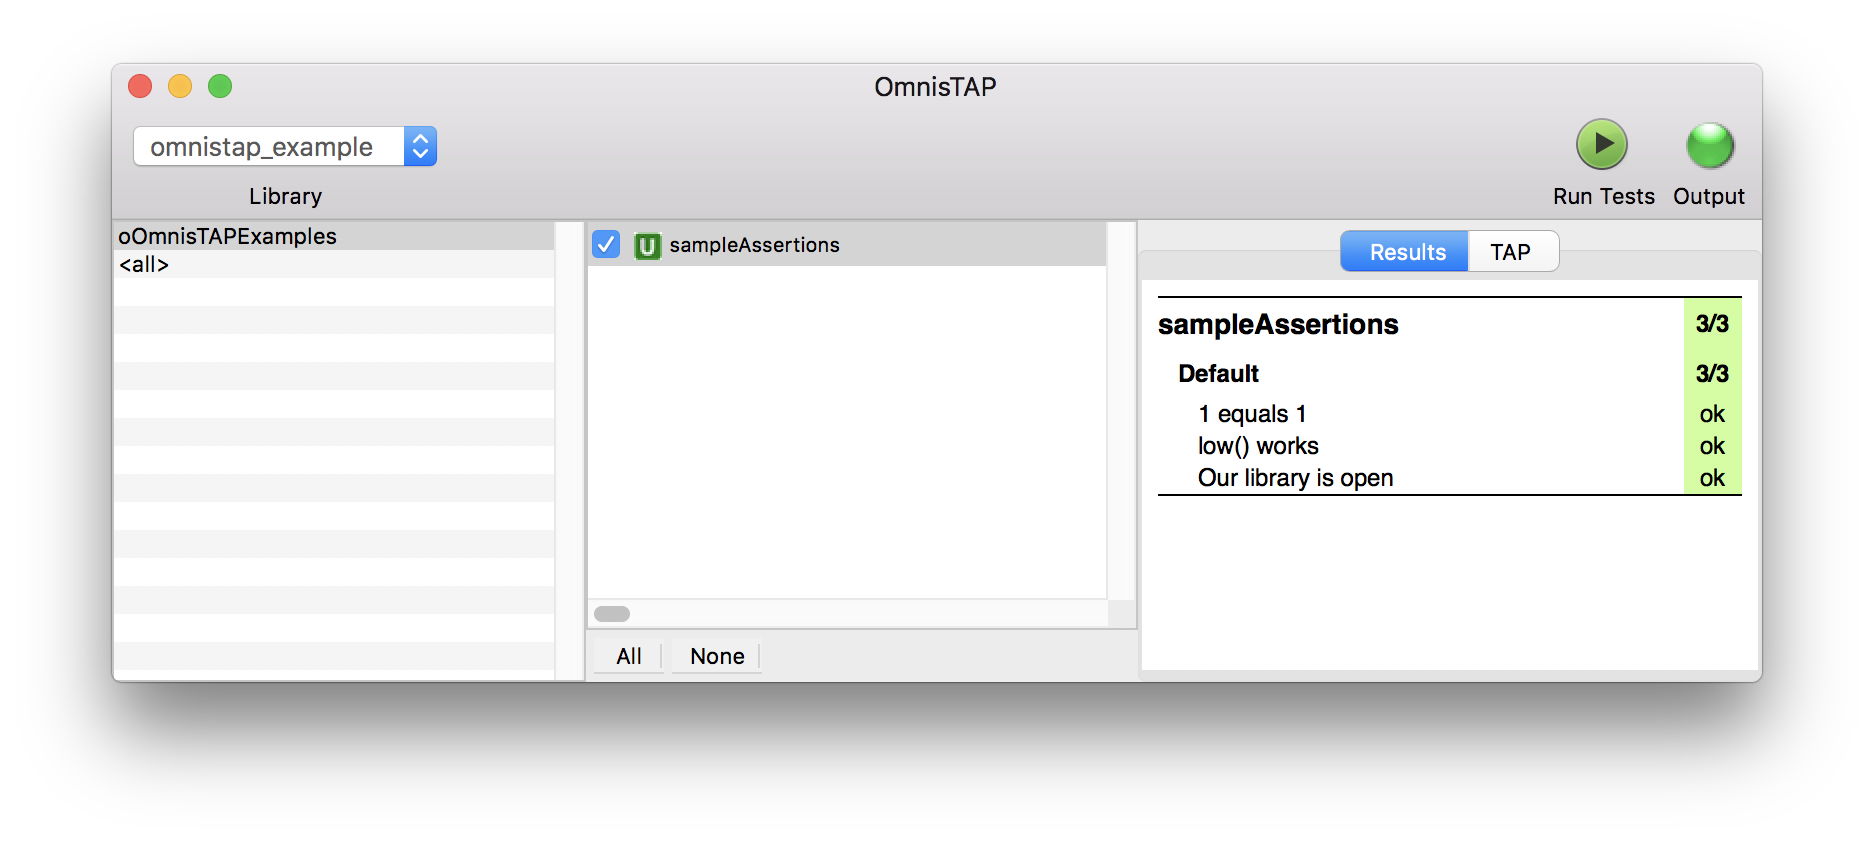 OmnisTAP Example output in the IDE